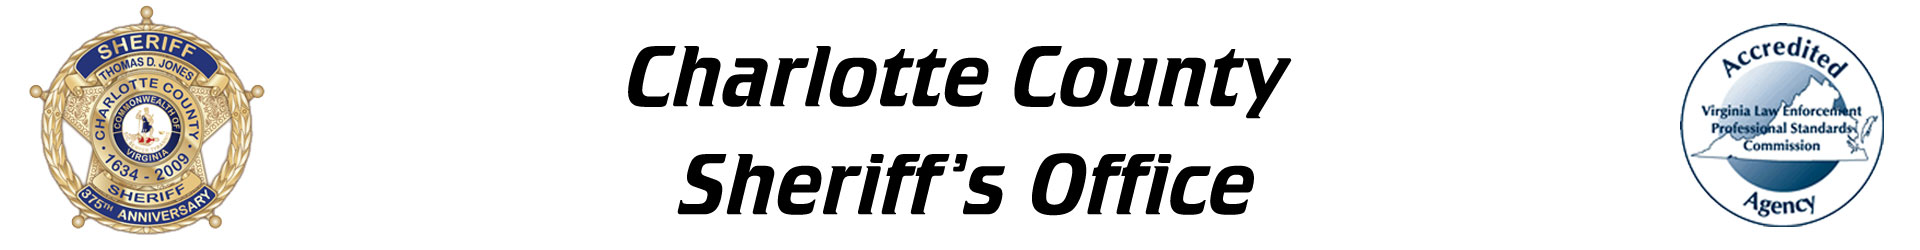 Jail | Charlotte County Sheriff's Office